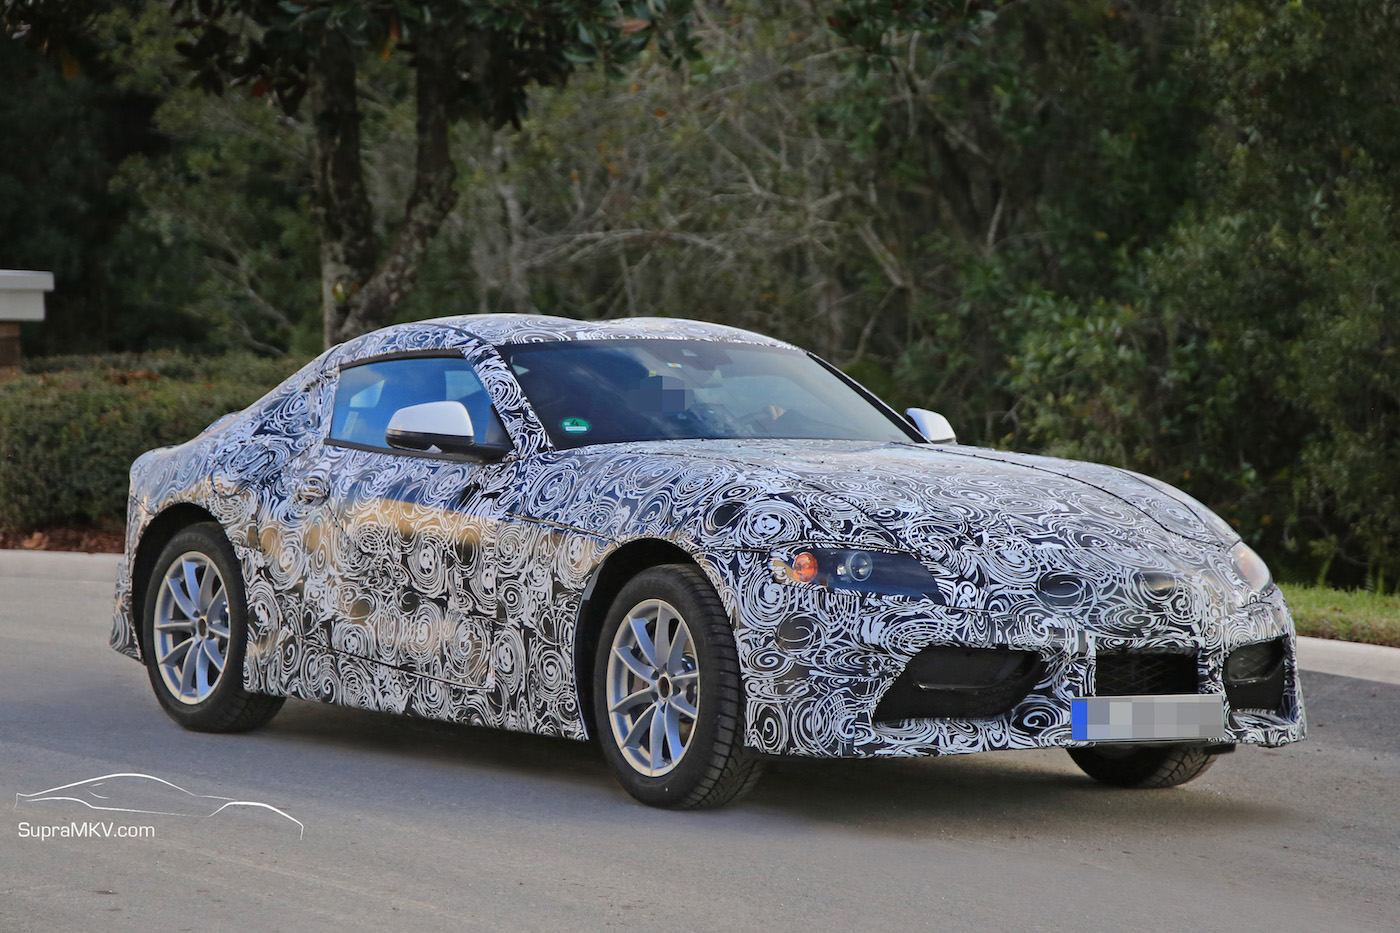 2018 2019 Toyota Supra Prototype Reveals Production Intent Design Parts Supramkv 2018 2019